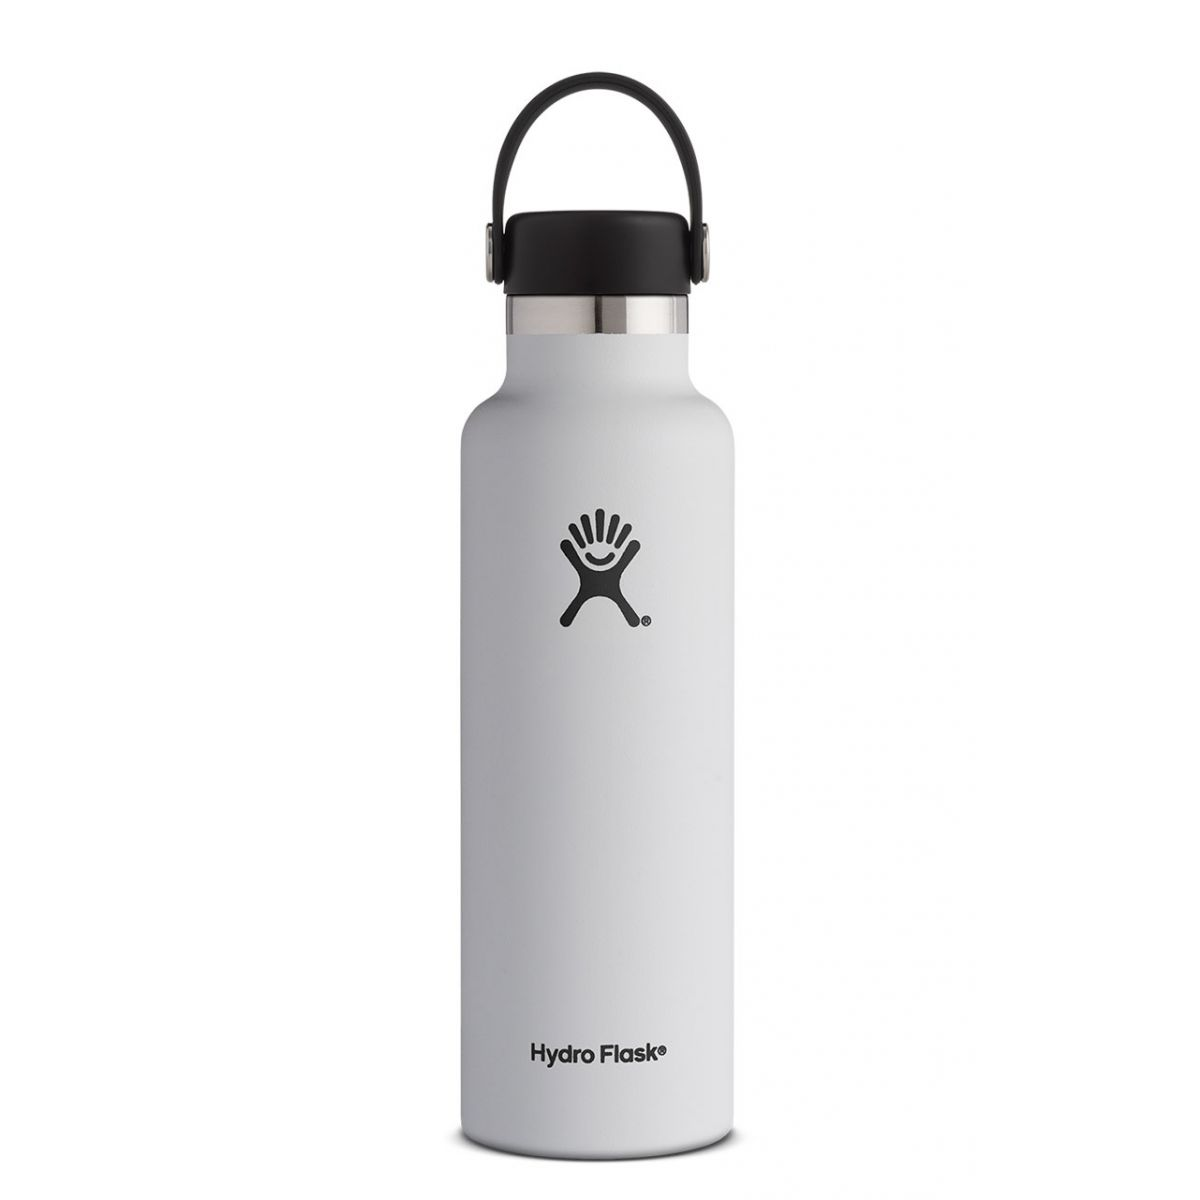 Image For Hydroflask Insulated Water Bottle, White